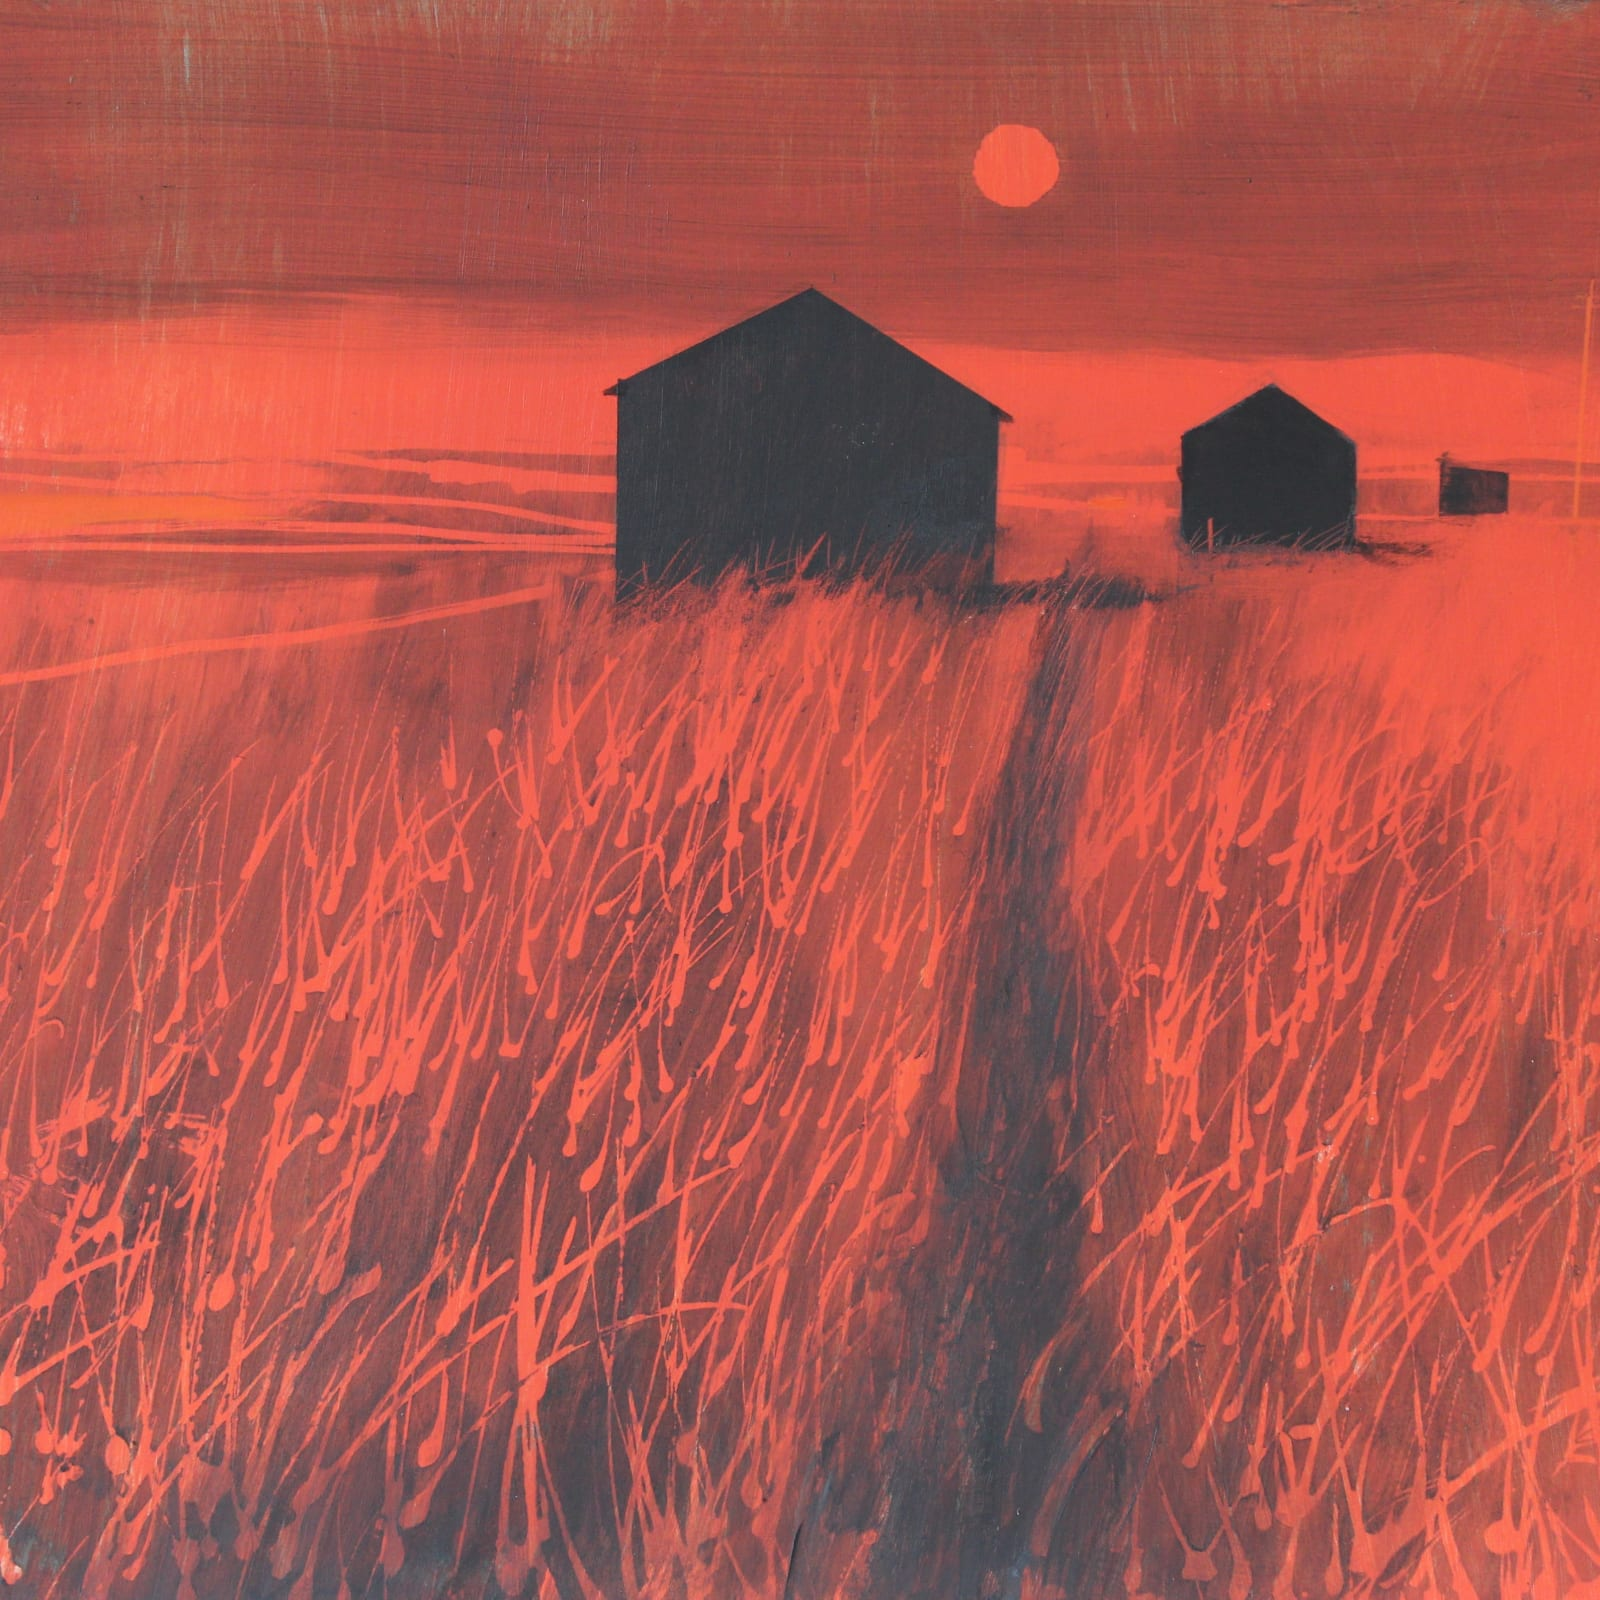 Alasdair Lindsay, Fishermen's Huts and Estuary, Sunset, 2019